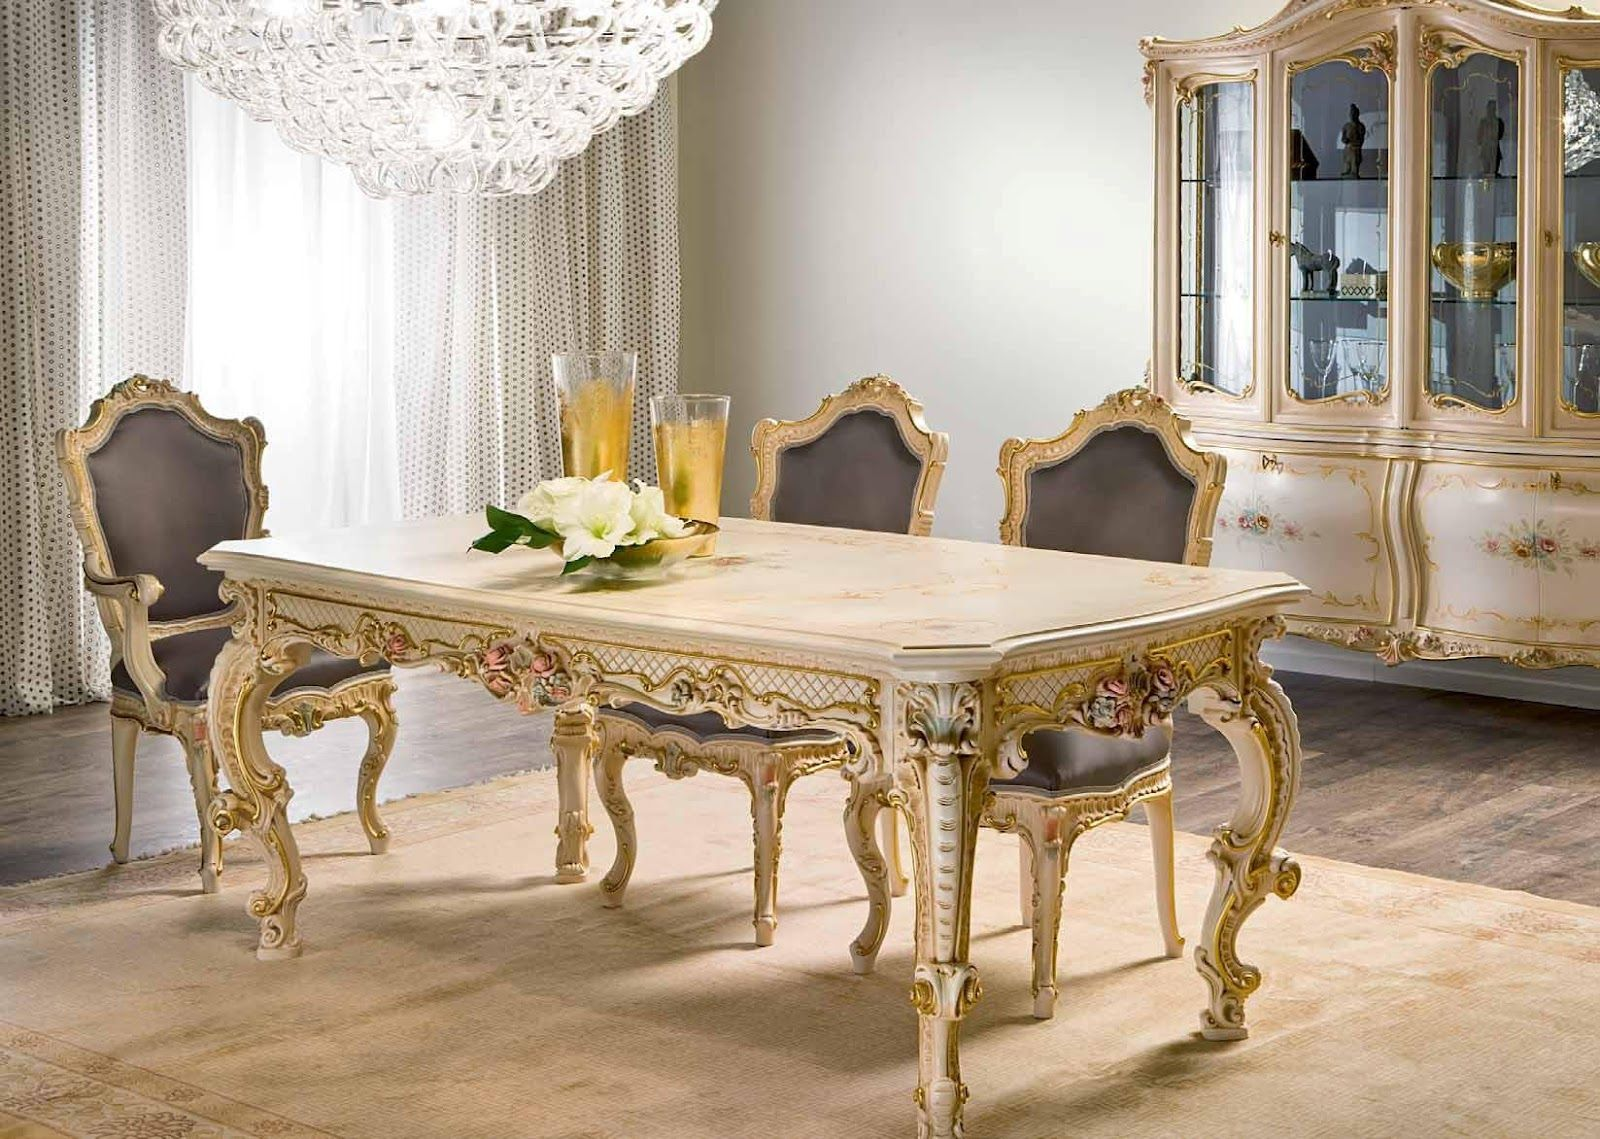 Amazing Antique French Furniture | French Style Furniture Classical Collection